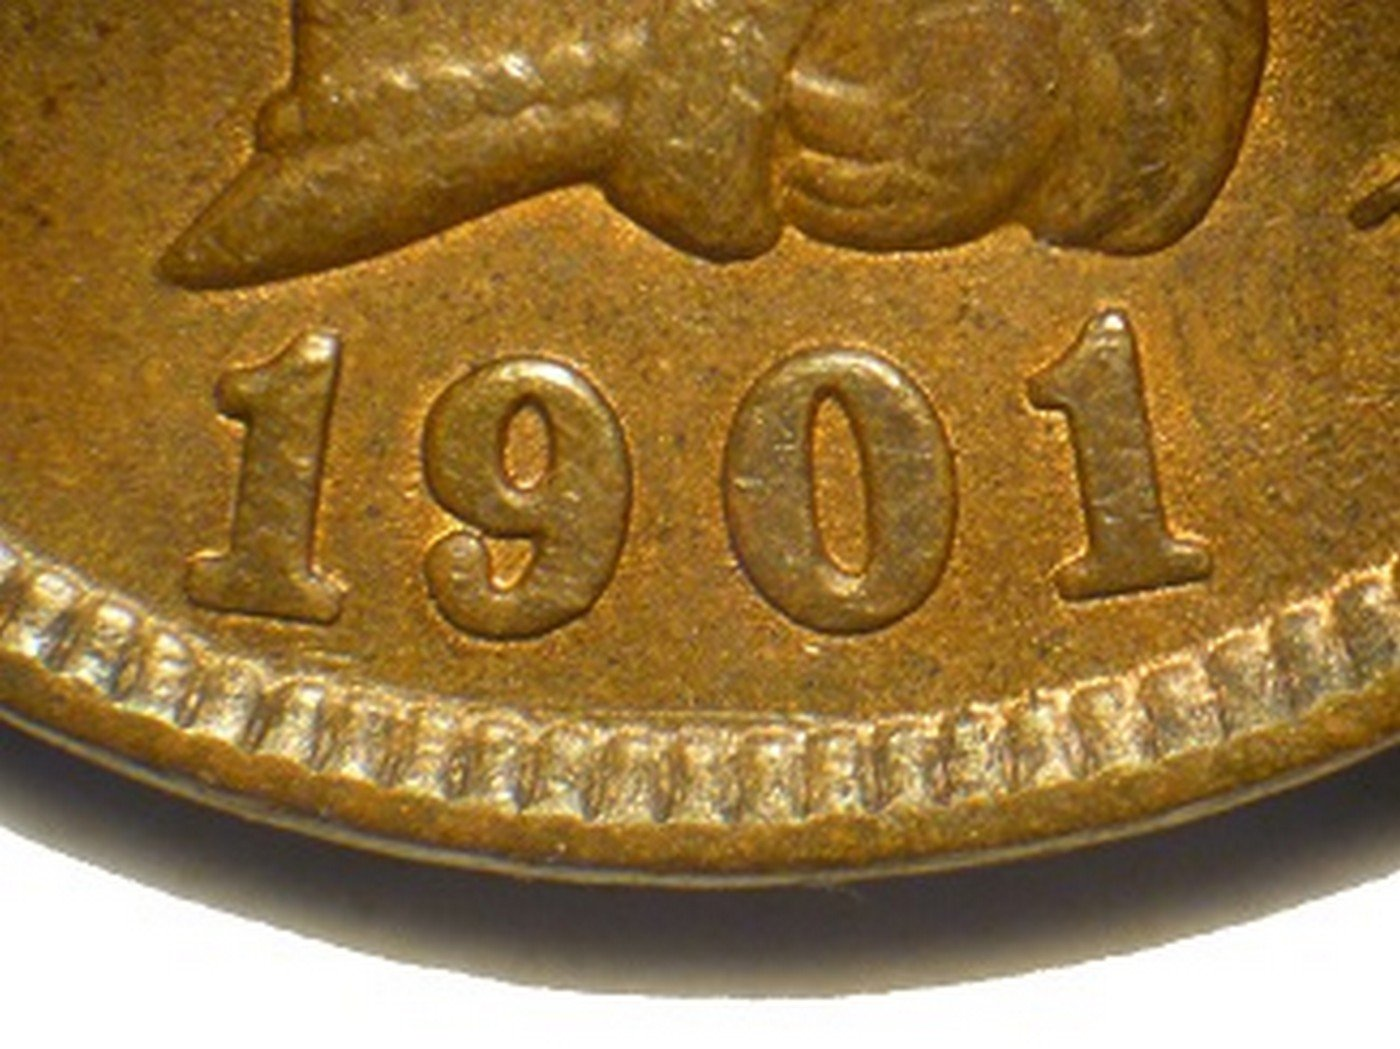 1901 RPD-023 - Indian Head Penny - Photo by David Poliquin